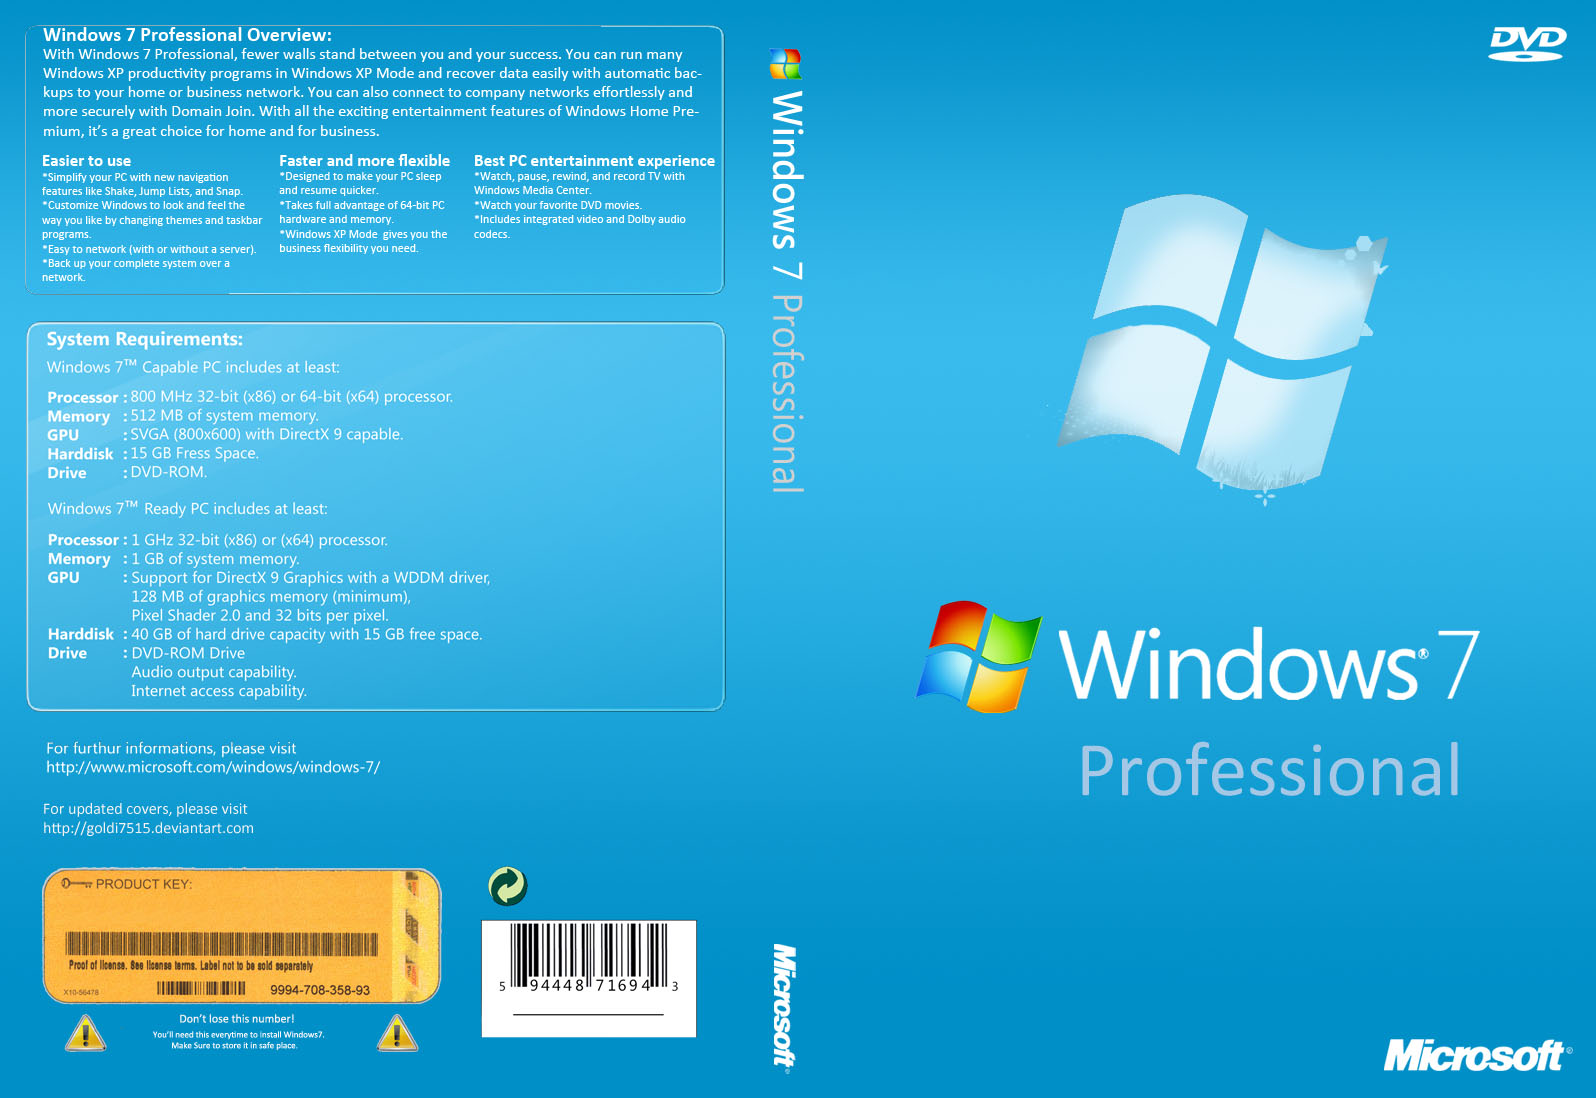 This will show you how to download and use Windows 7 Upgrade Advisor to get a report to see if your computer can run Windows 7. When the report is finished you will see which upgrade options are available and get guidance on fixing the system, program, and devices issues it finds before you install Windows 7.